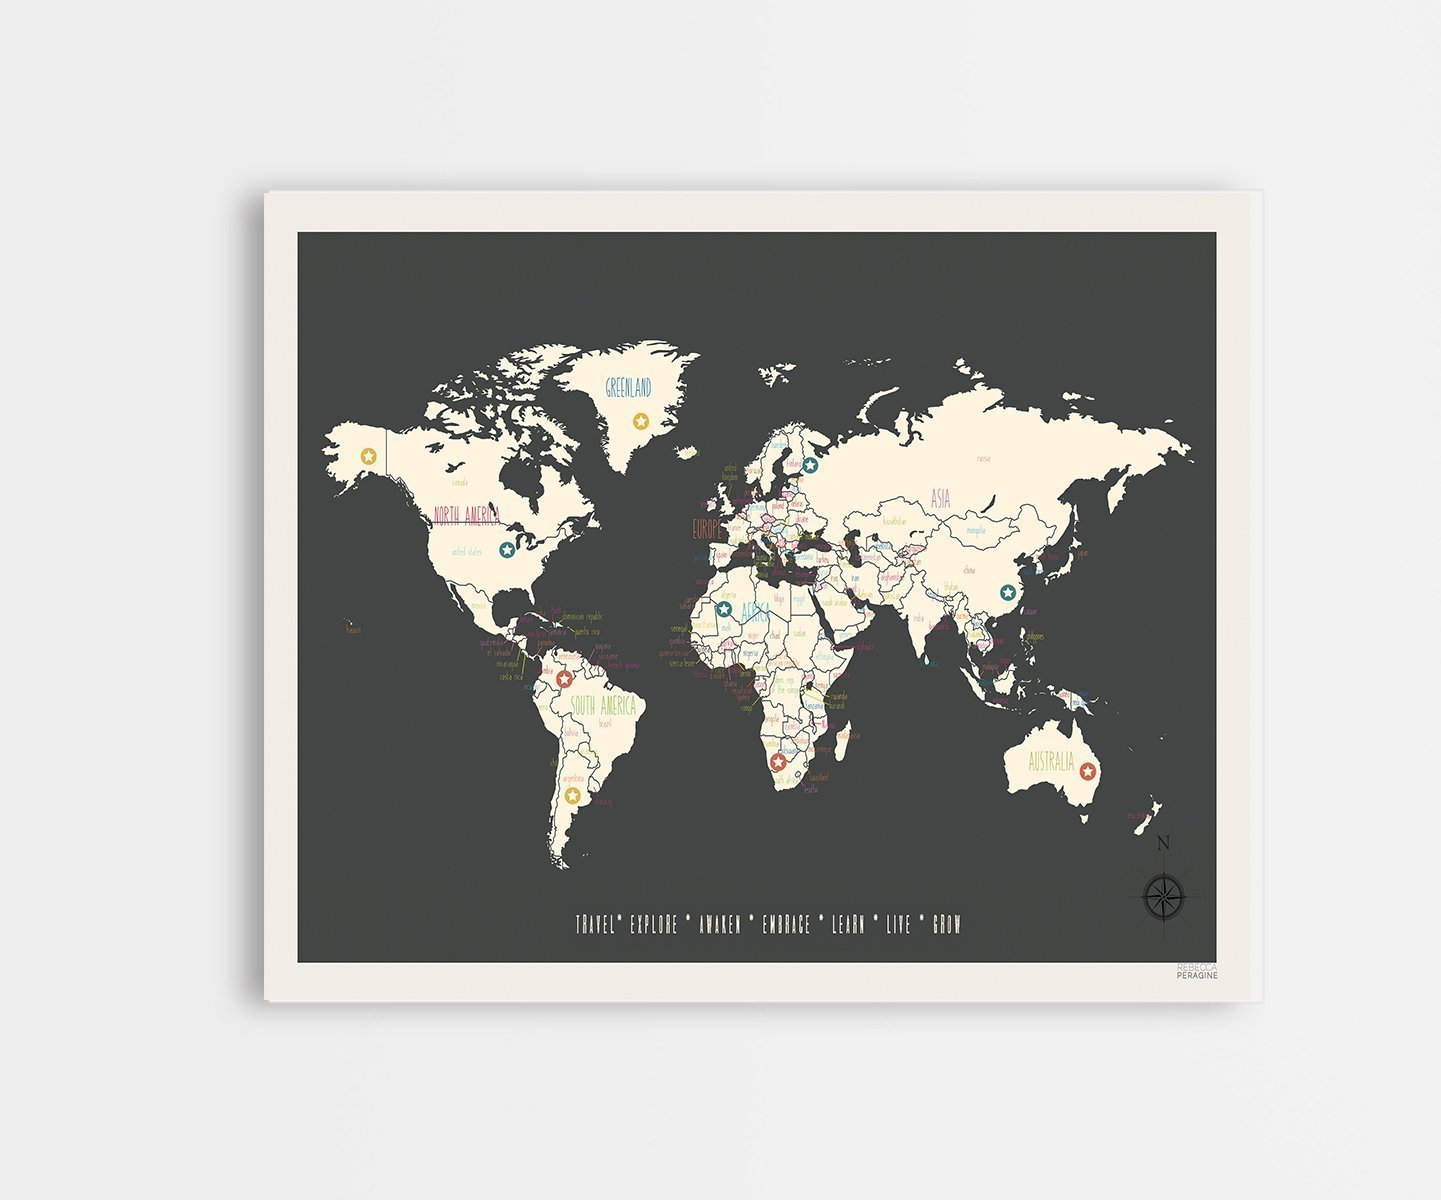 World Travel Map, Vintage Personalized World Map, 11x14 Inch Print Wall Art Print, hildren's Wall Art Map, Kid's Travel Map, Nursery Décor, Wall Map, Nature Themed Nursery Décor, Nursery Wall Art hildren's Wall Art Map Kid's Travel Map Nursery DÃ